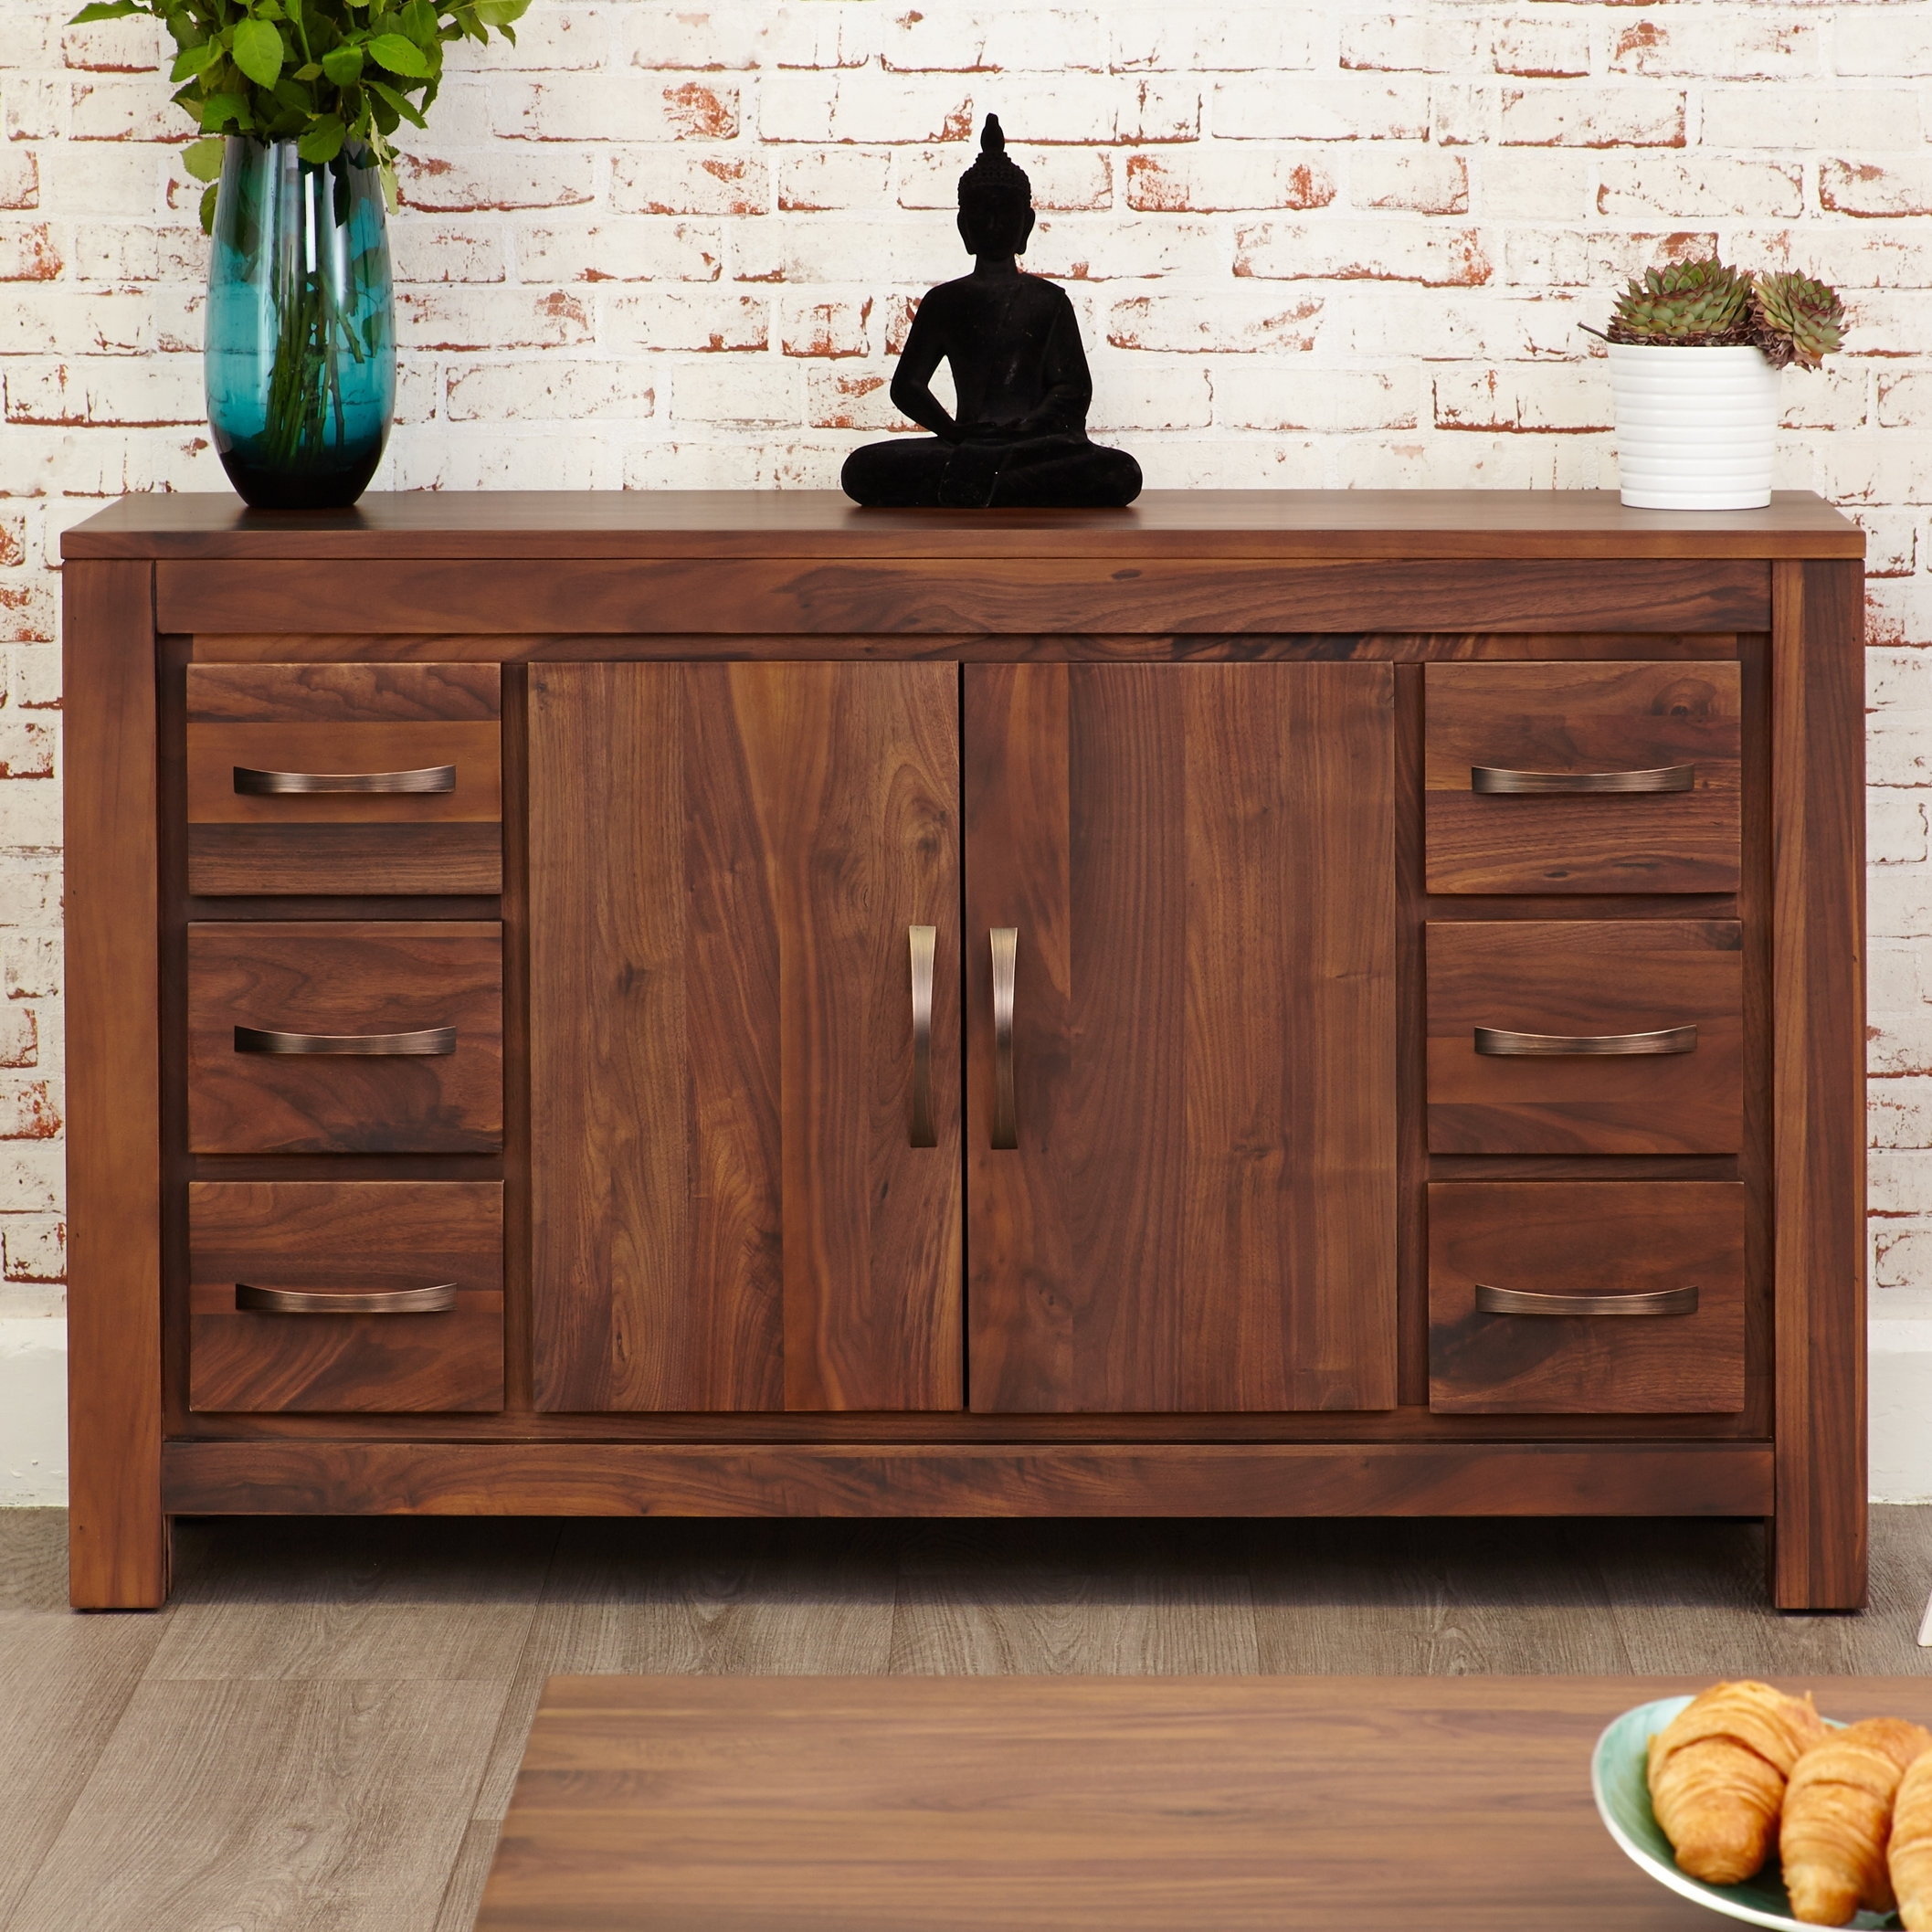 Marlow Home Co. Madelyn 2 Door 6 Drawer Sideboard | Wayfair.co.uk with regard to Antique Walnut Finish 2-Door/4-Drawer Sideboards (Image 18 of 30)